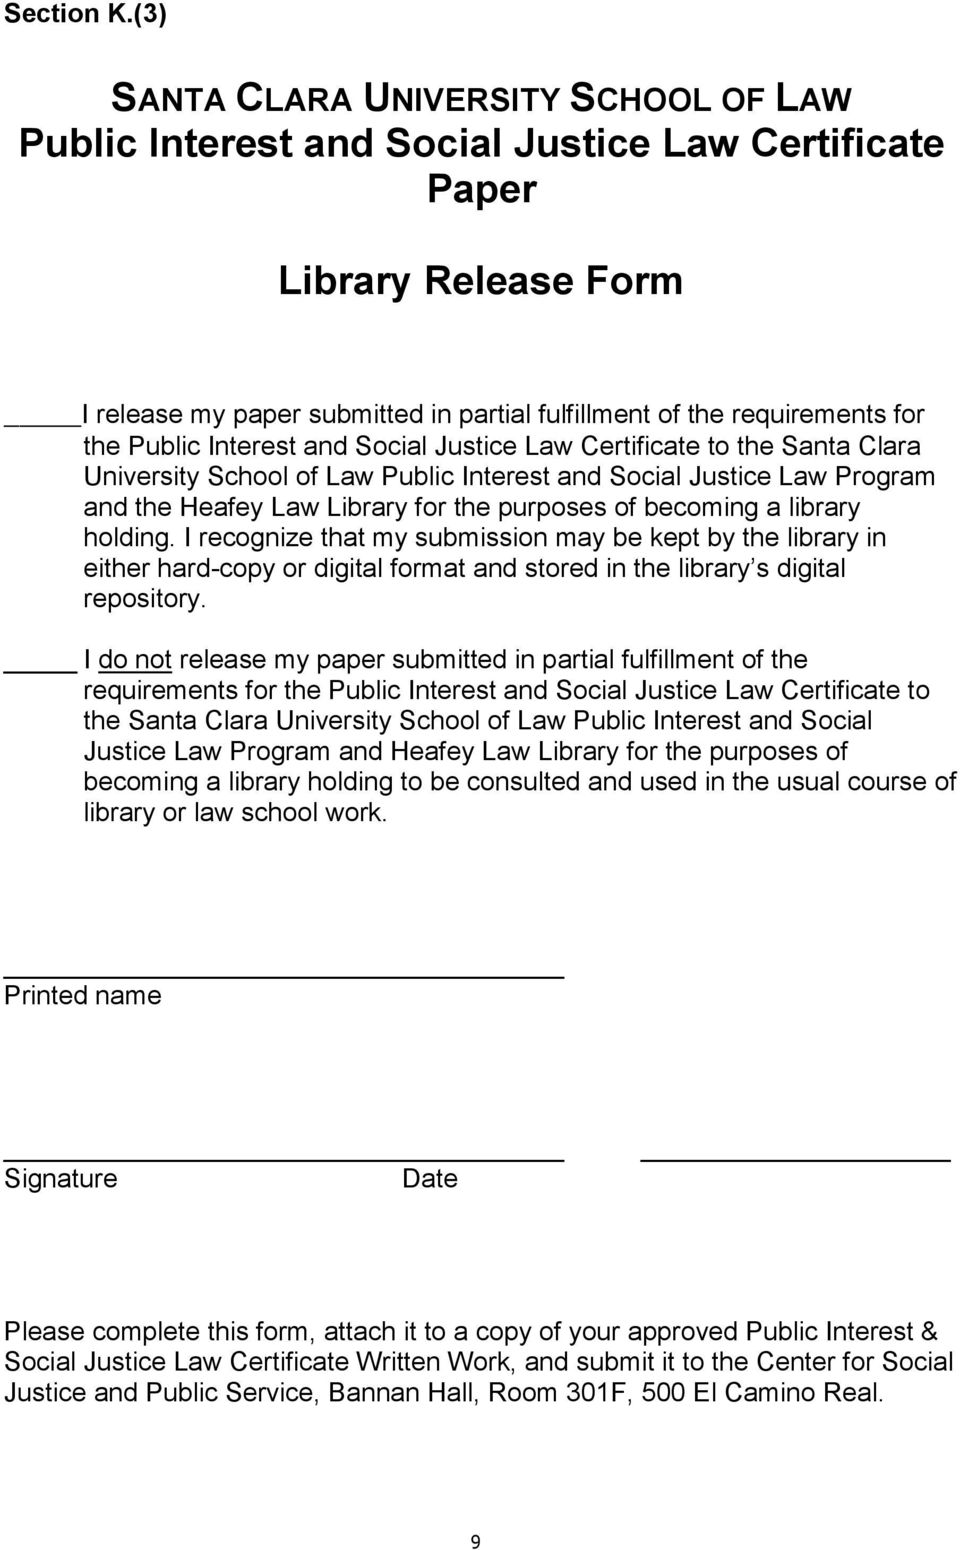 Public Interest and Social Justice Law Certificate to the Santa Clara University School of Law Public Interest and Social Justice Law Program and the Heafey Law Library for the purposes of becoming a